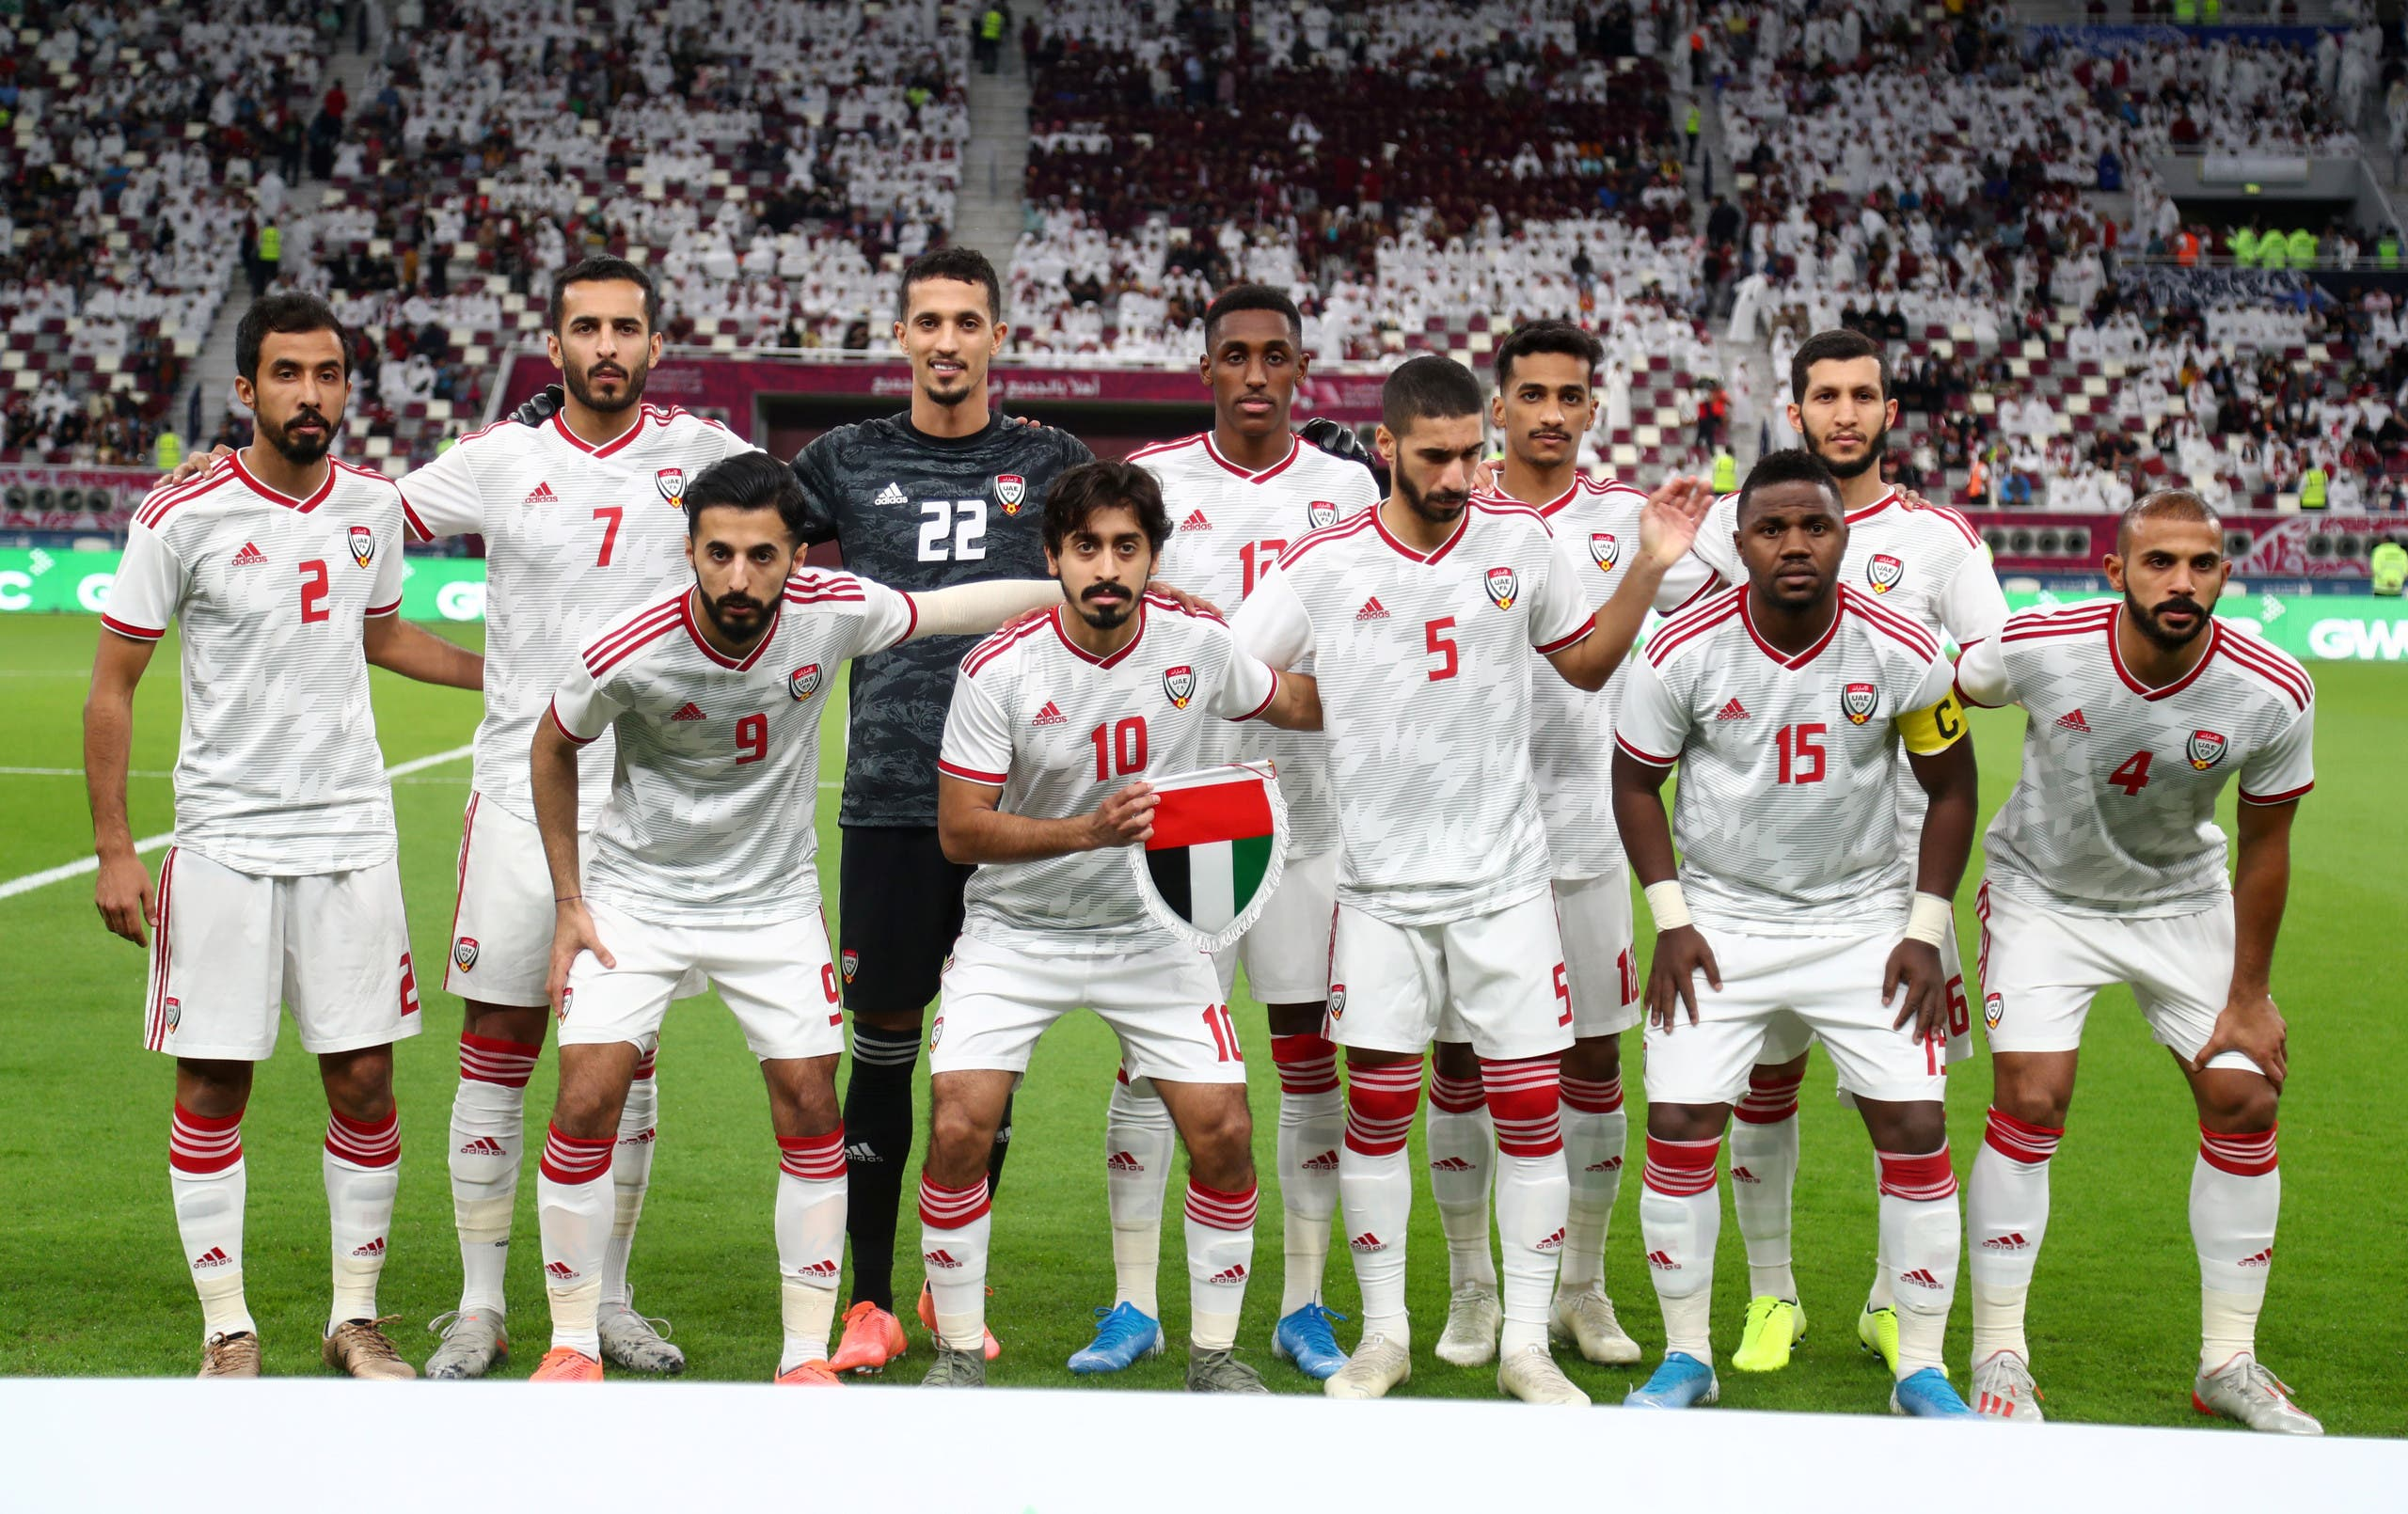 The UAE national football team before the game against Qatar on December 2, 2019. (Reuters)